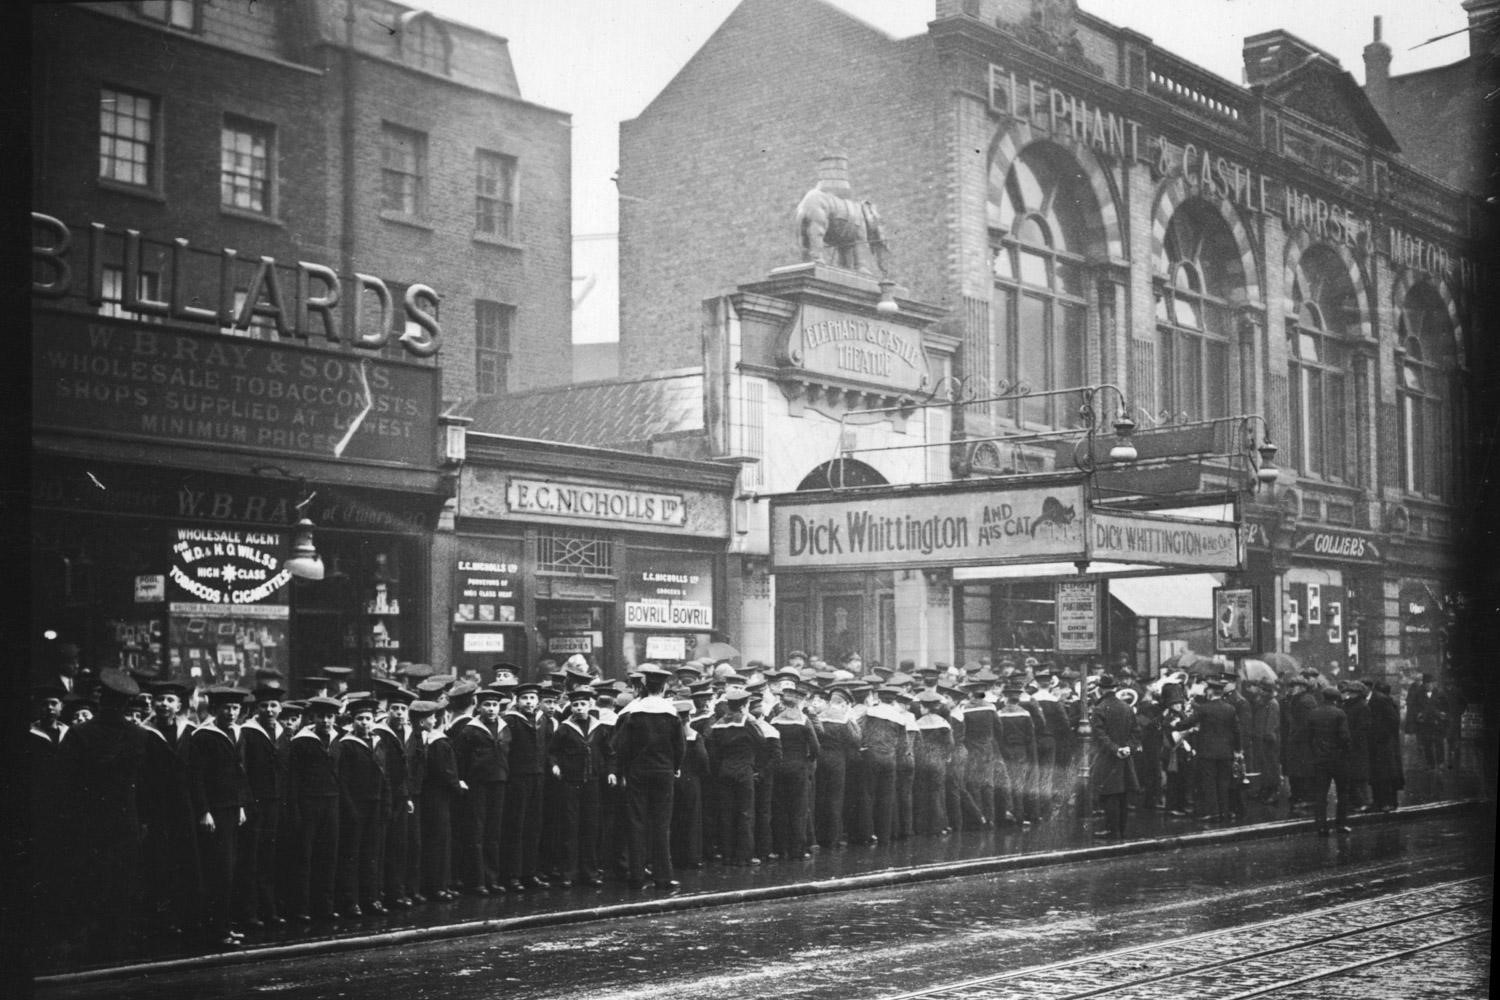 New Kent Road. 950 sailor boys arriving at the Elephant and Castle Theatre, to see Dick Whittington.1928.jpg